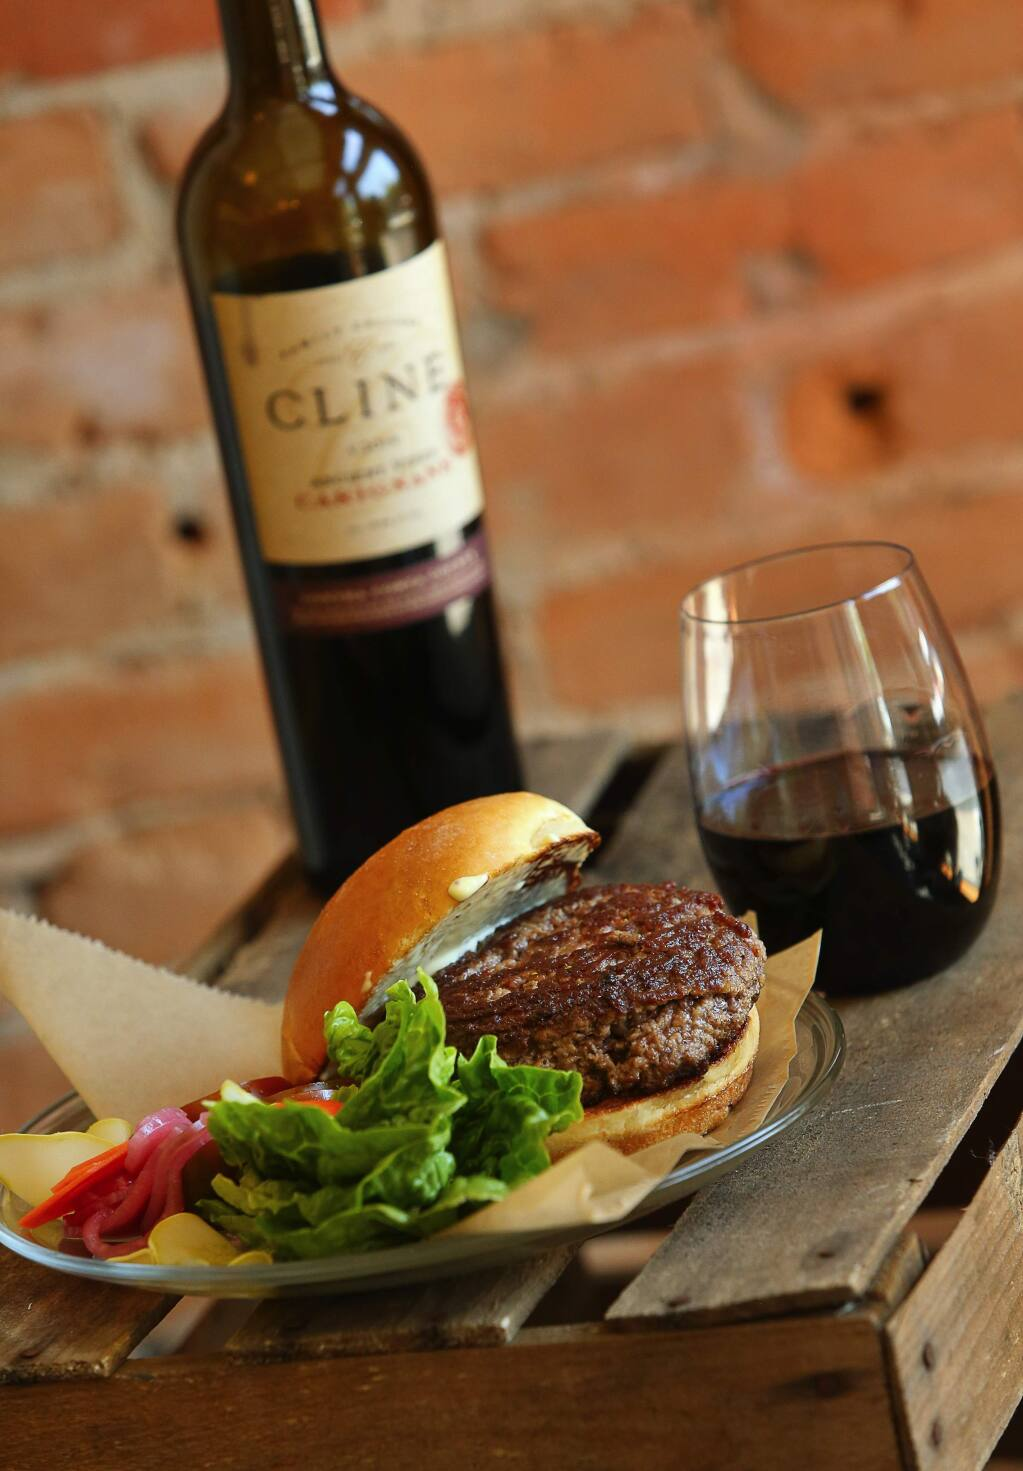 Bacon and grass-fed beef burger created by Travis Day, owner and butcher of Thistle Meats in Petaluma. The burger is paired with Cline Family Cellars 2014 Carignane.(Christopher Chung/ The Press Democrat)